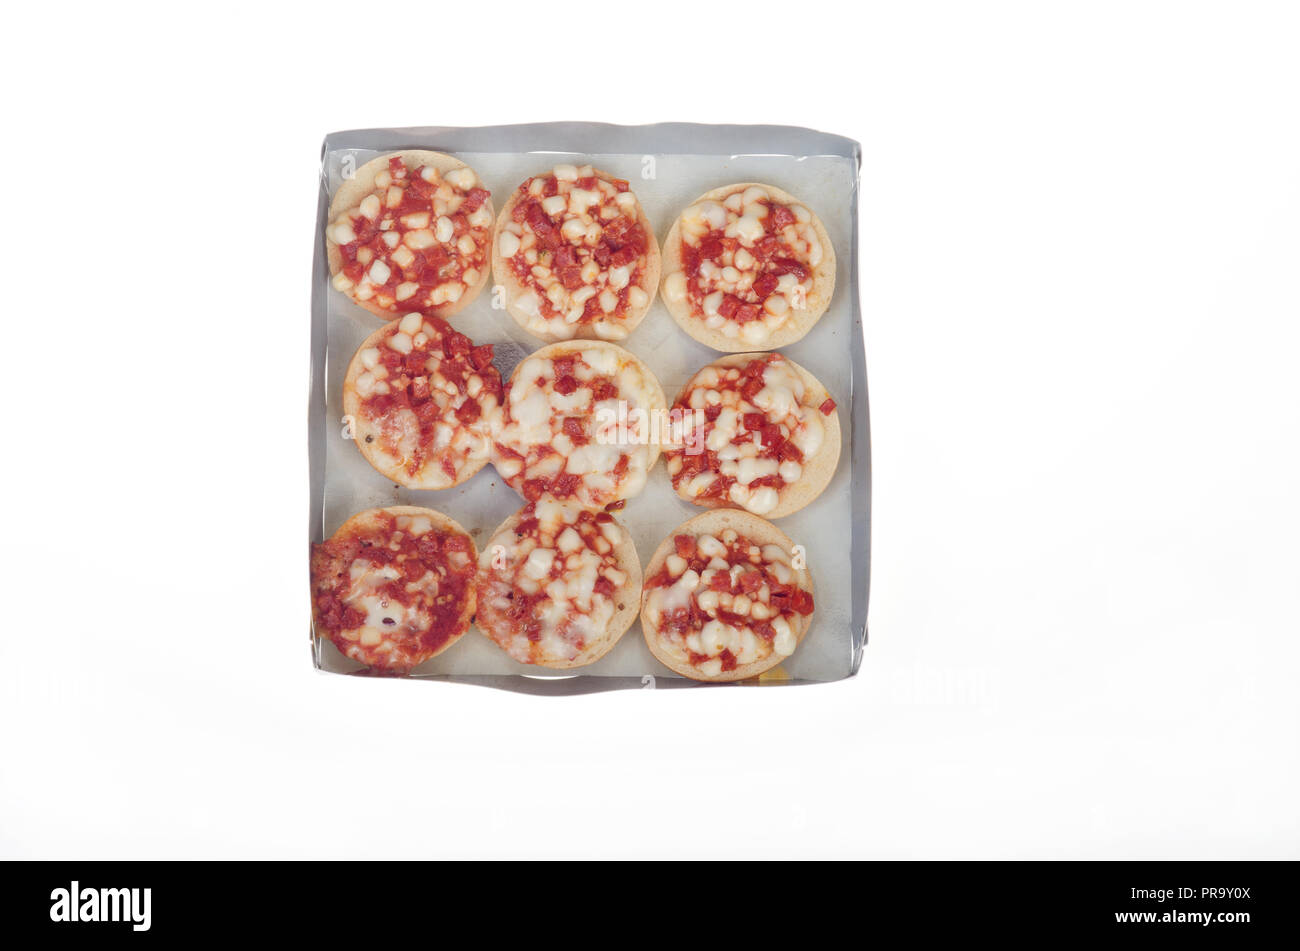 Tray of microwave cooked Mini Bagel Pizza Bites with tomato sauce, mozzarella cheese and pepperoni - Stock Image